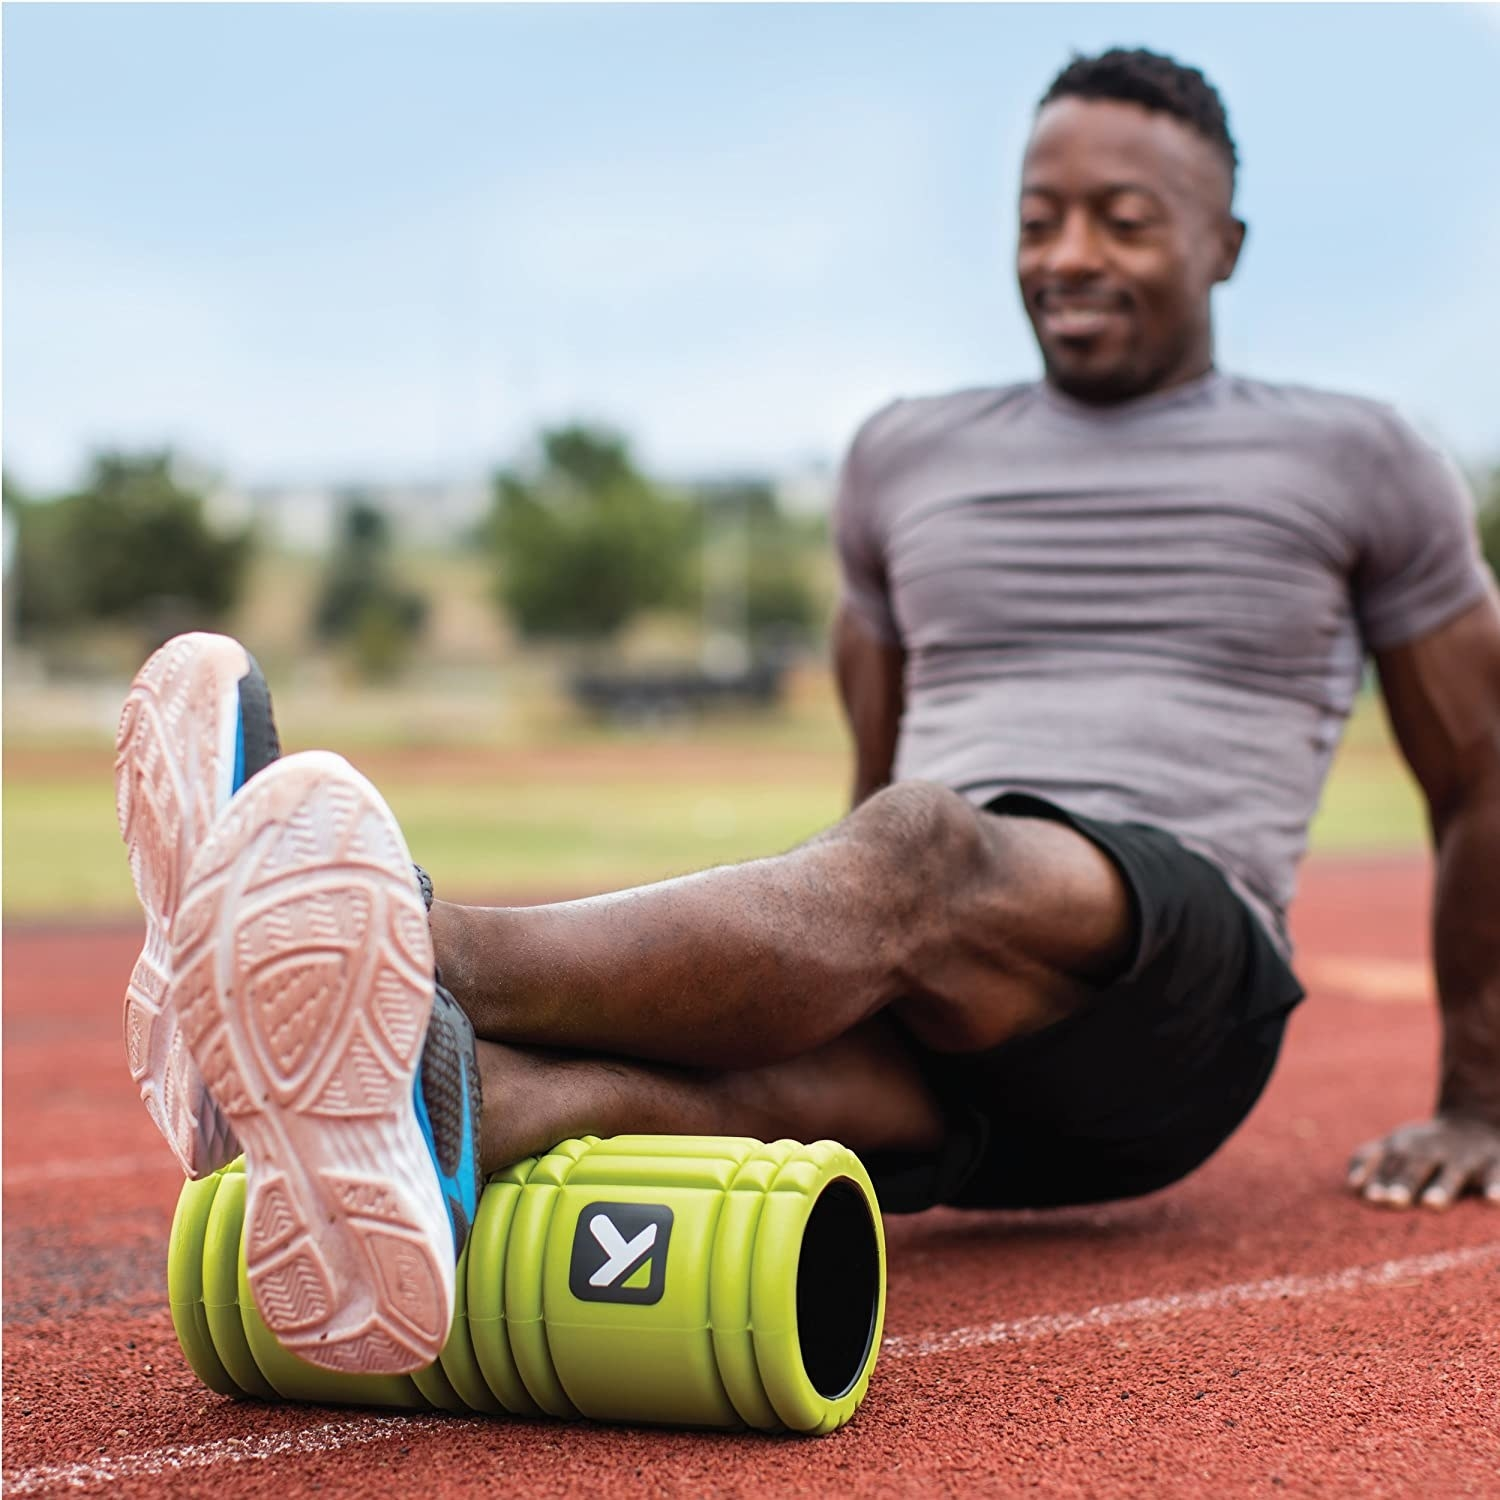 A model stretching their legs on a lime green foam roller